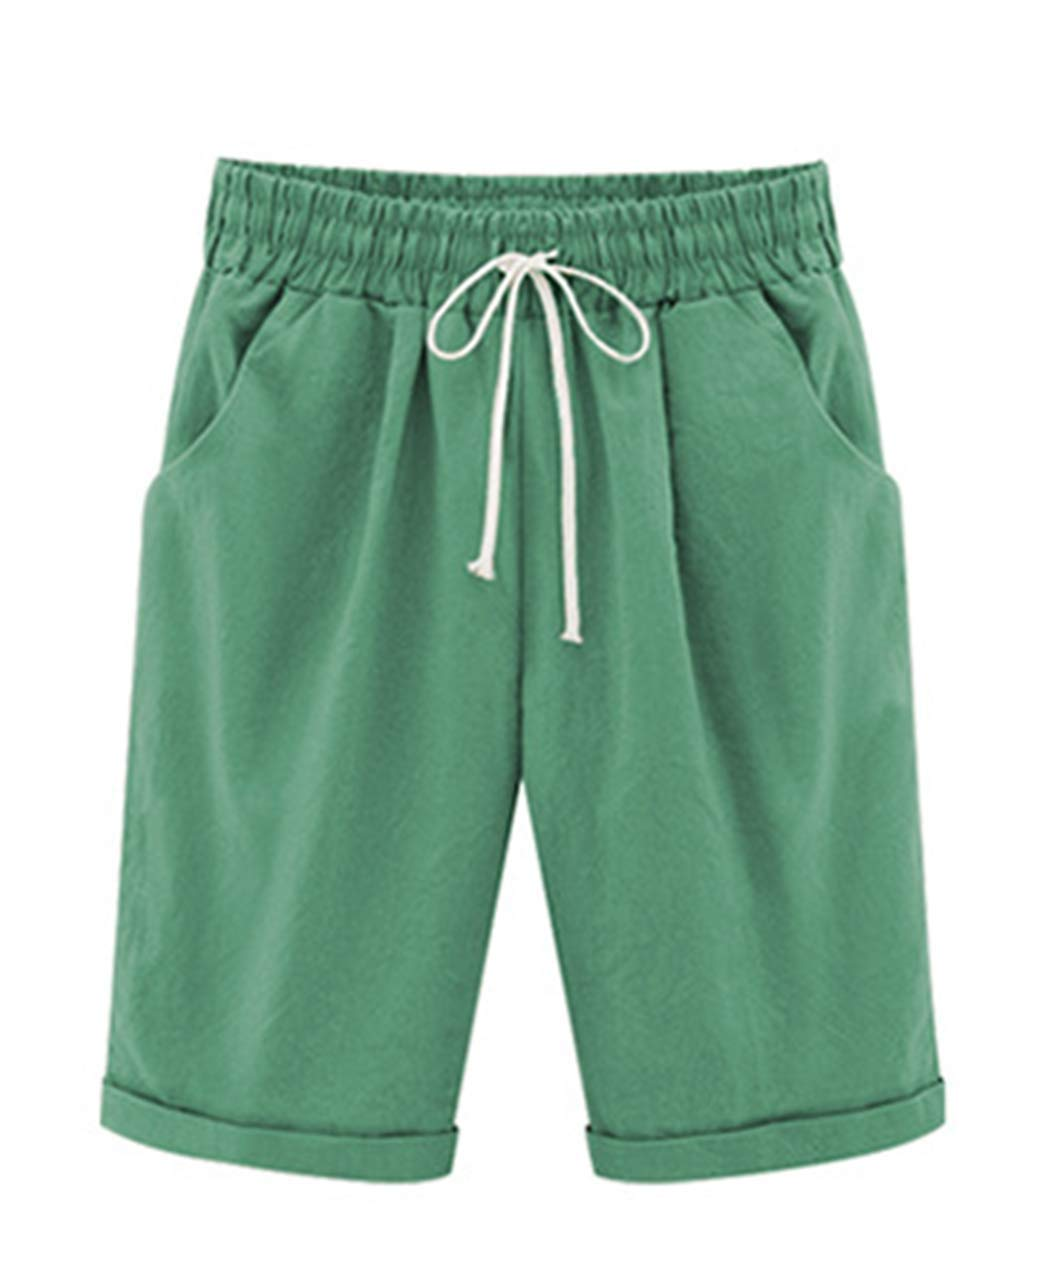 Vcansion Women's Loose Elastic-Waisted Bermuda Drawstring Casual Shorts Grass Green Asian 3XL/US 8-10 by Vcansion